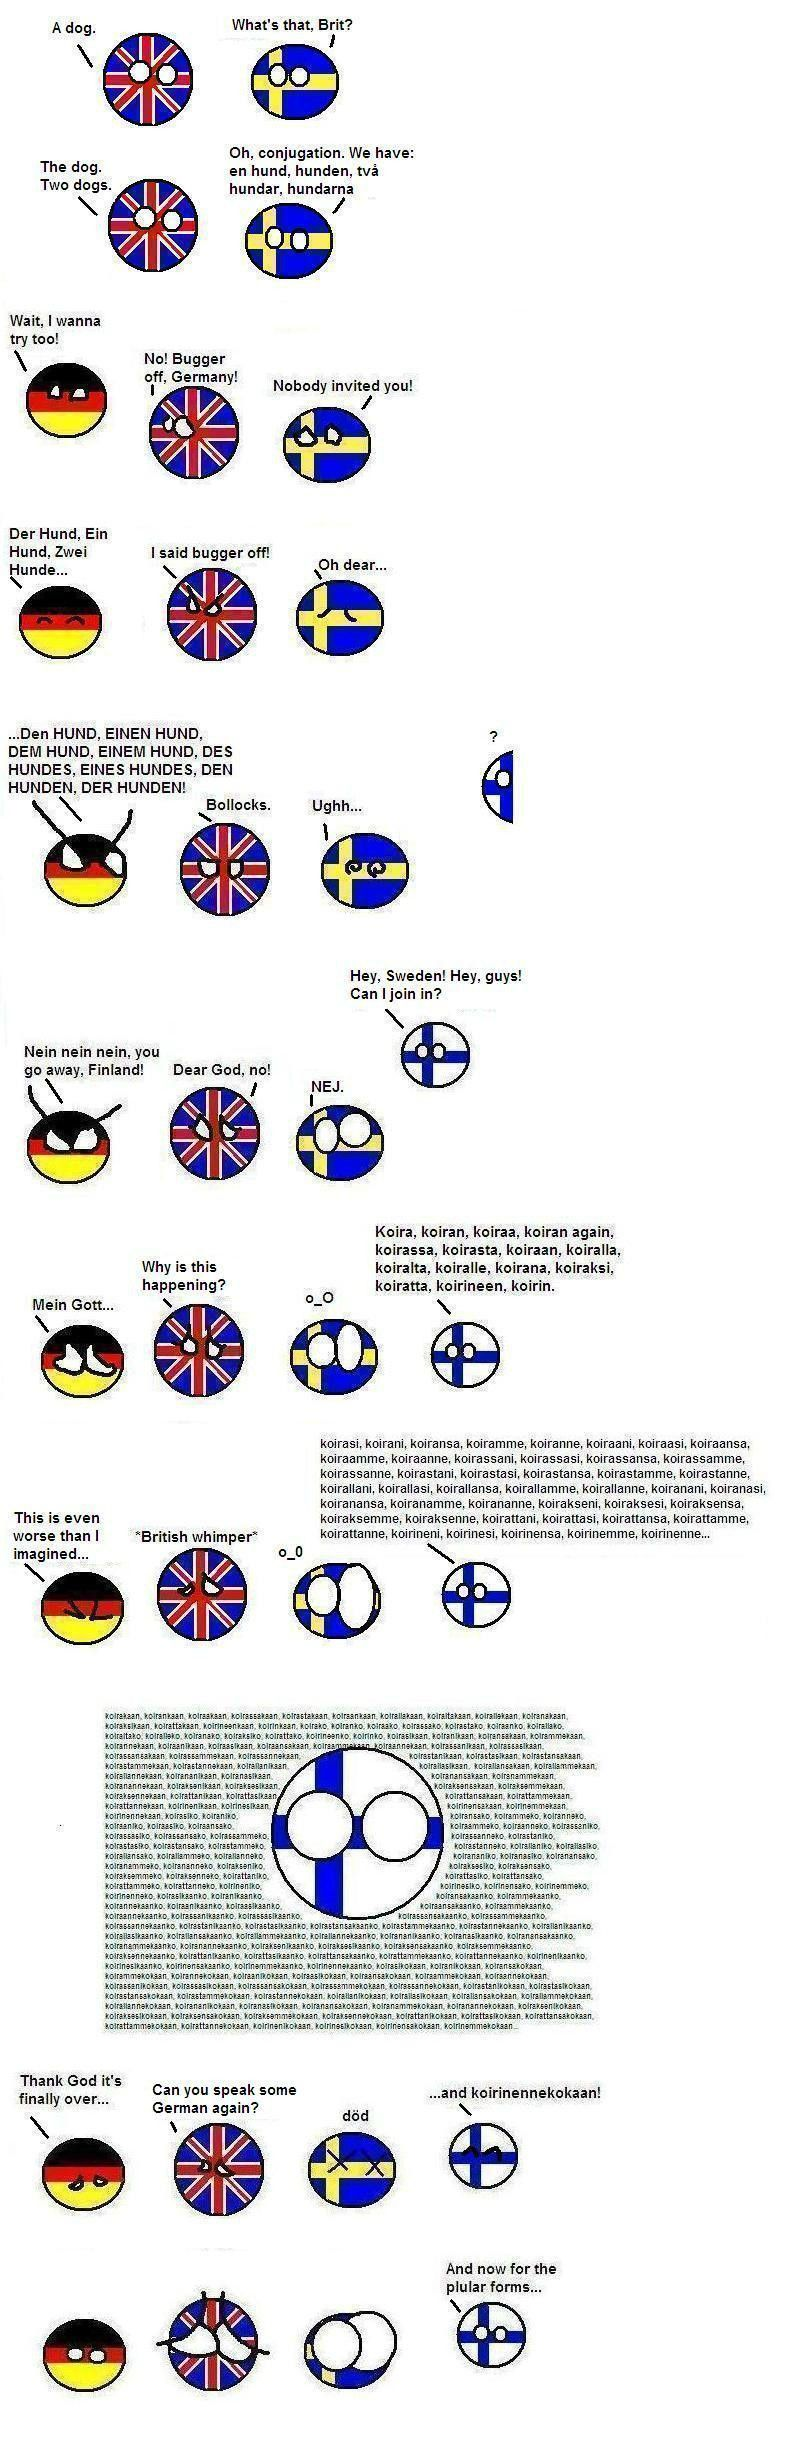 """Behold the glorious complexity of Finnish conjugations! Hmm... Maybe, since """"koira"""" is a noun, they are inflections? I'm not sure, but I do know that Finnish is an awesomely complex language and I enjoy learning it."""